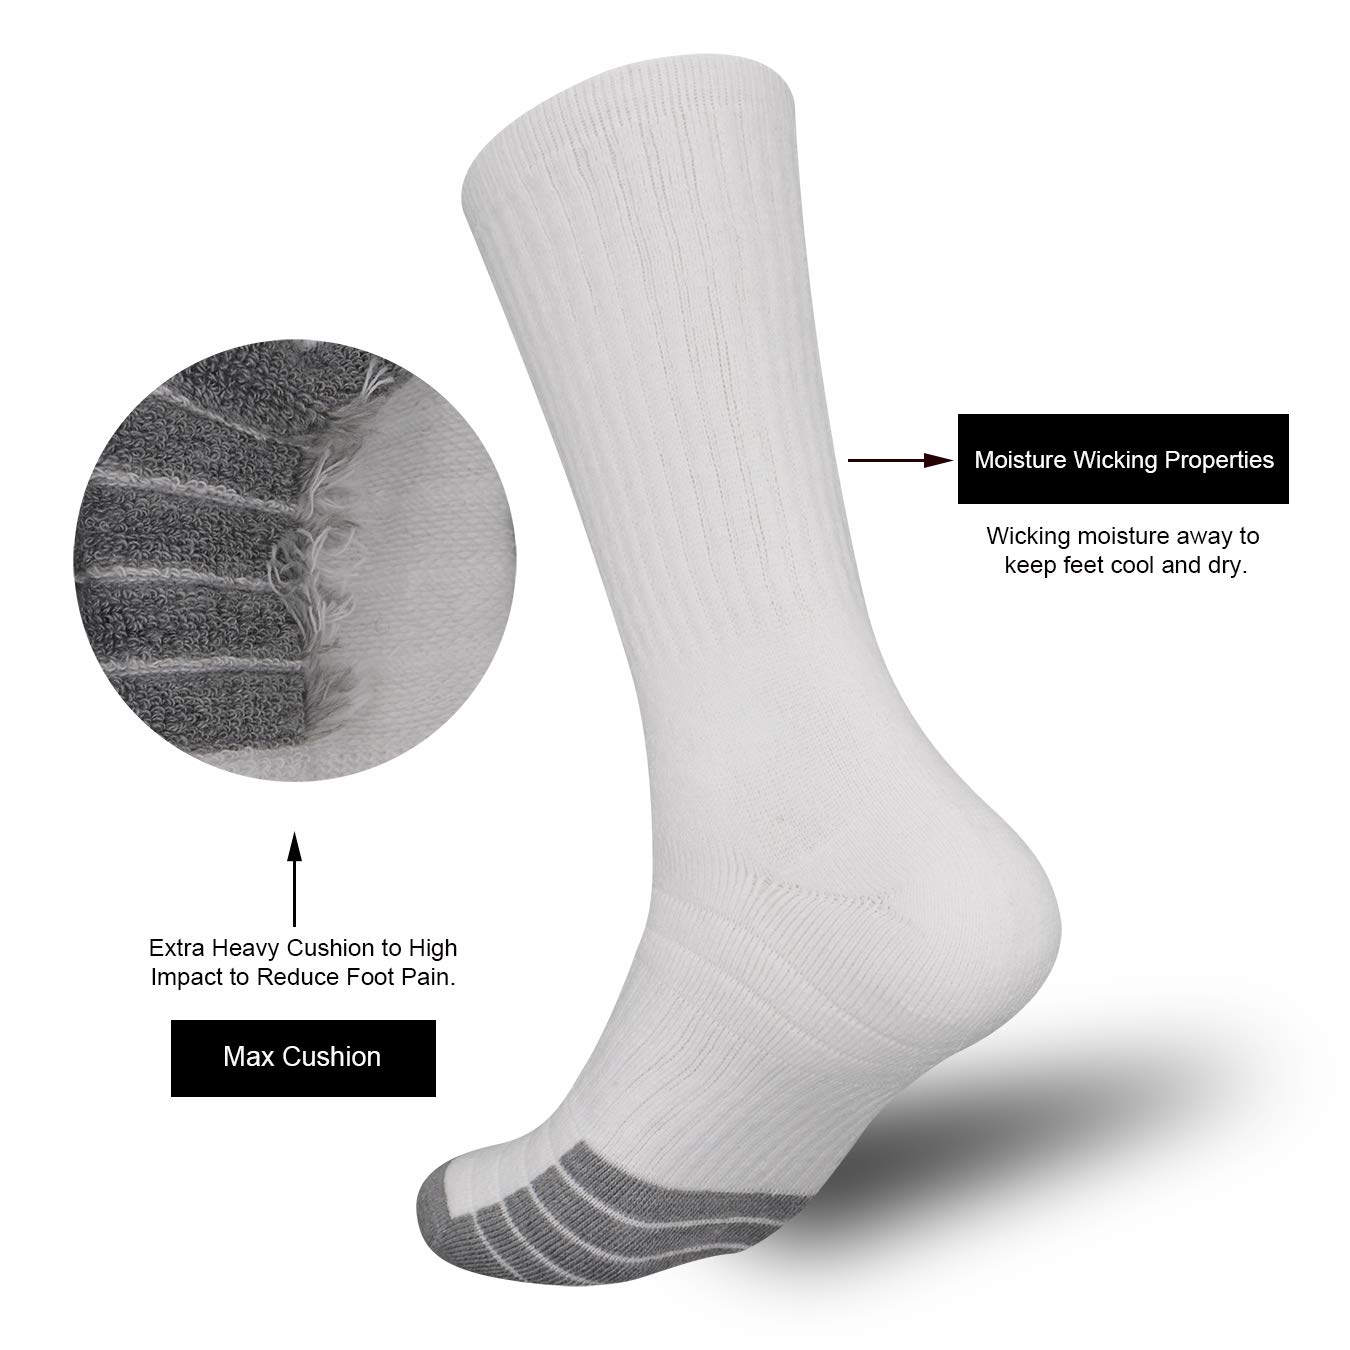 Inboots Mens 10 Pairs Cotton Moisture Wicking Extra Heavy Cushion Athletics Workout Crew Socks